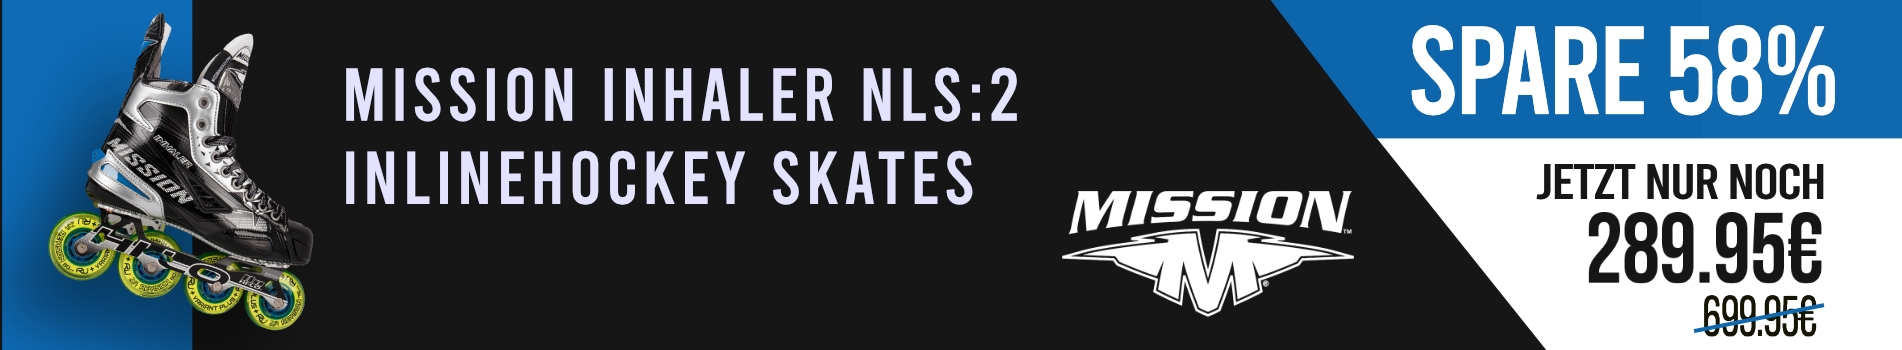 Mission NLS2 Inline Hockey Skates Sale